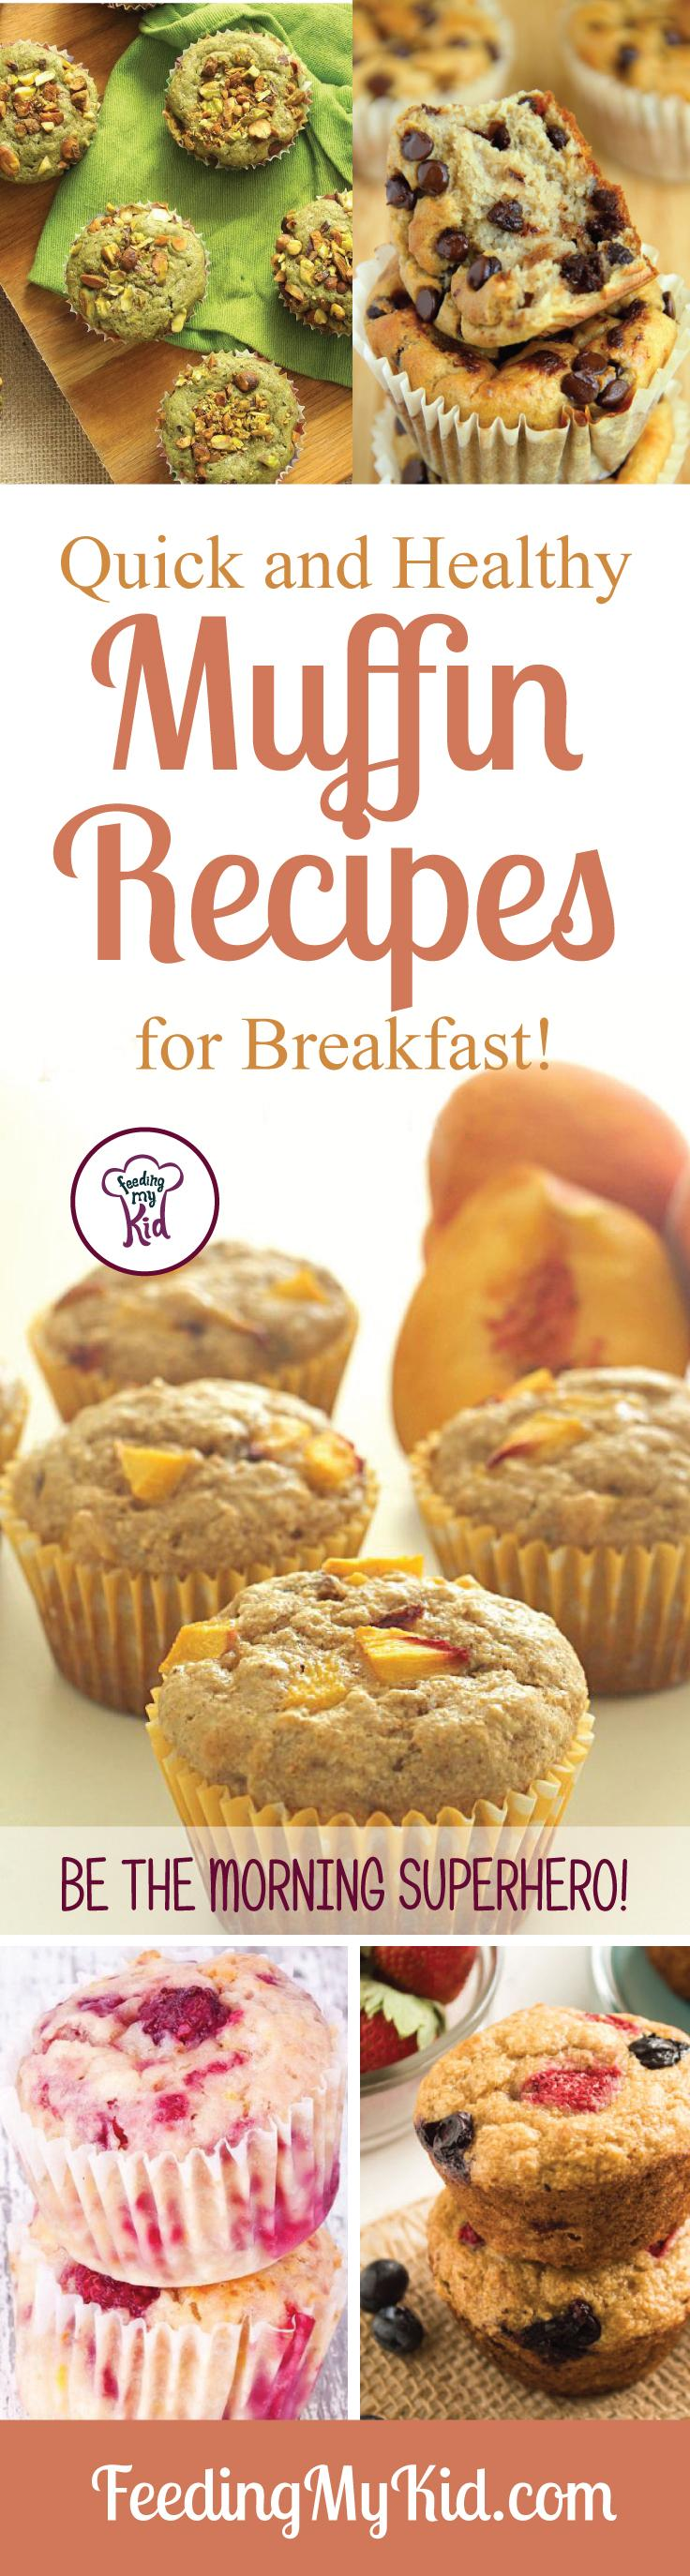 These muffin recipes are perfect for making a huge batch and saving them for the rest of the way. Just grab and go! Easy breakfasts for busy mornings.